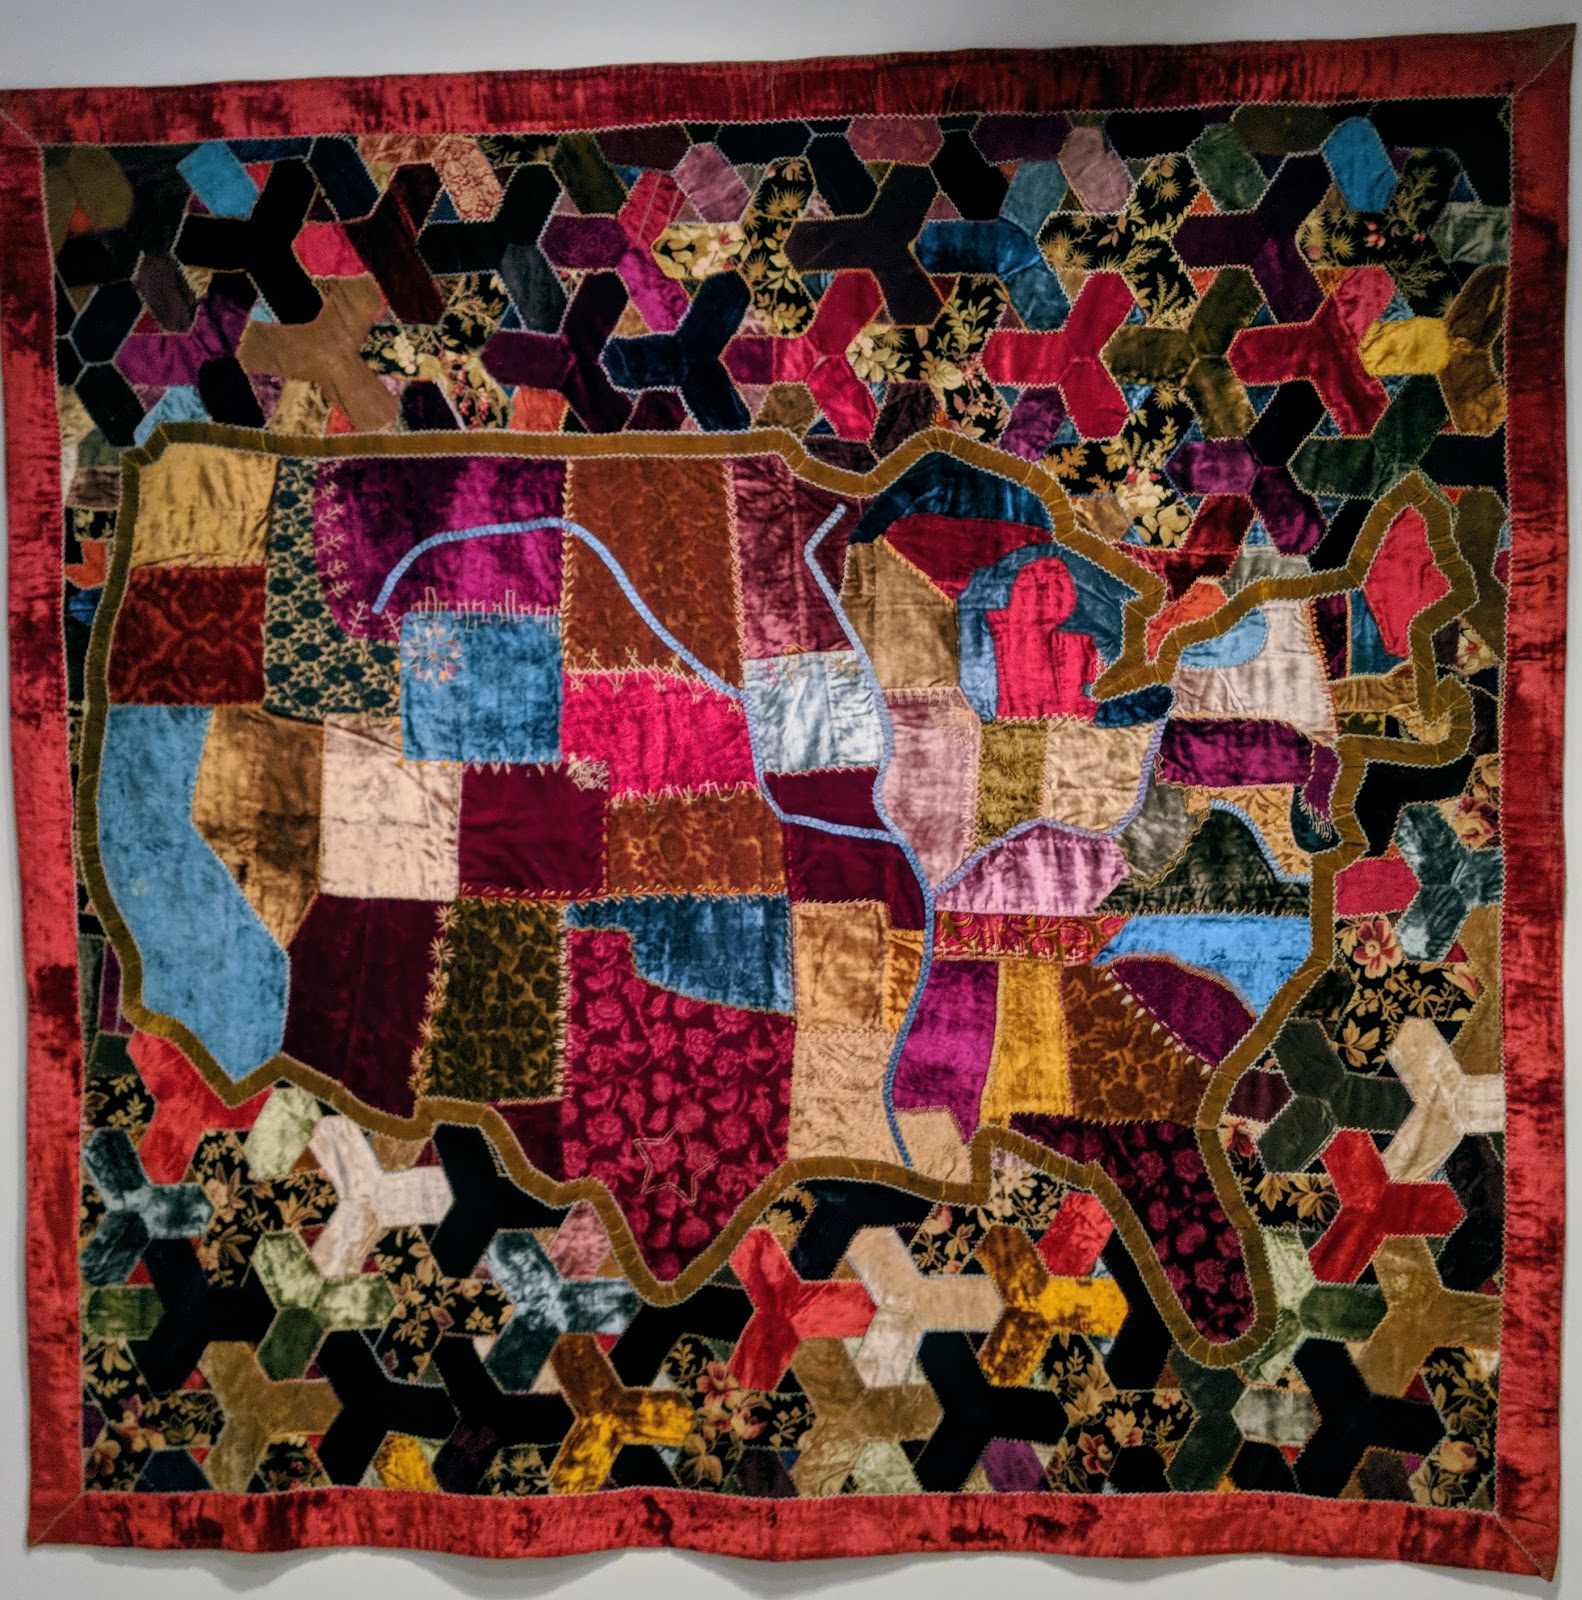 map quilt by anonymous 1886 possibly va silk and cotton velvets and brocade with embroidery